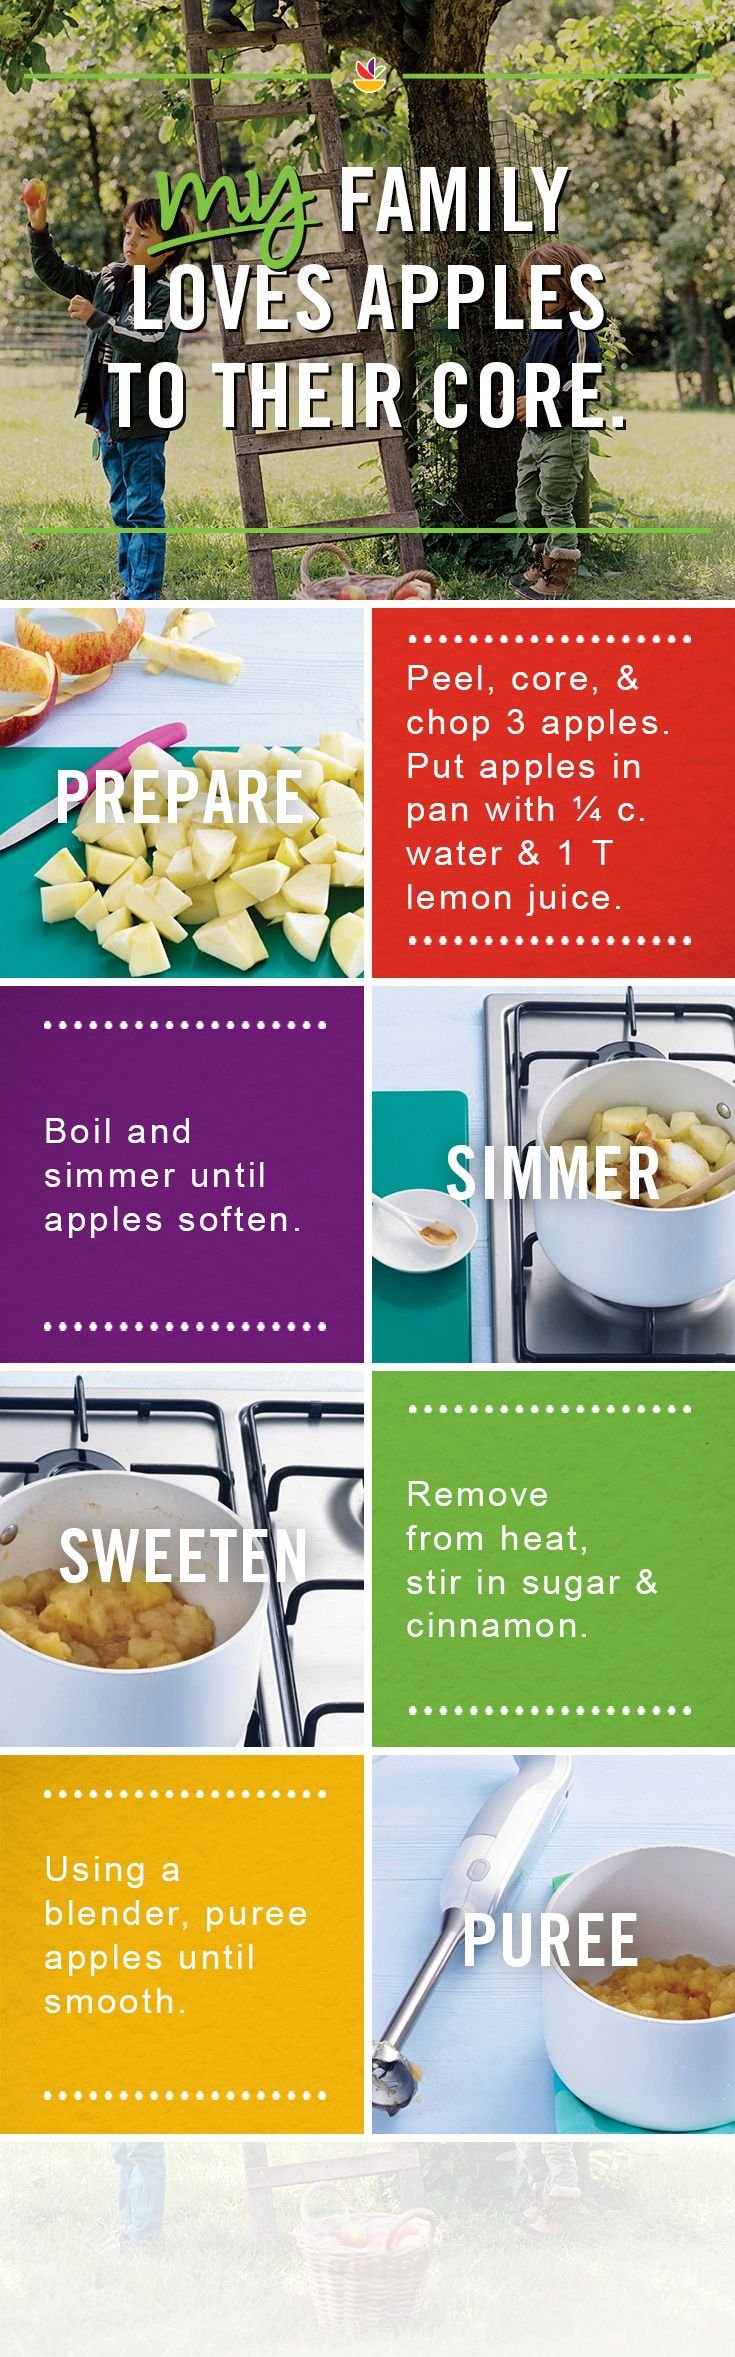 Applesauce, step by step